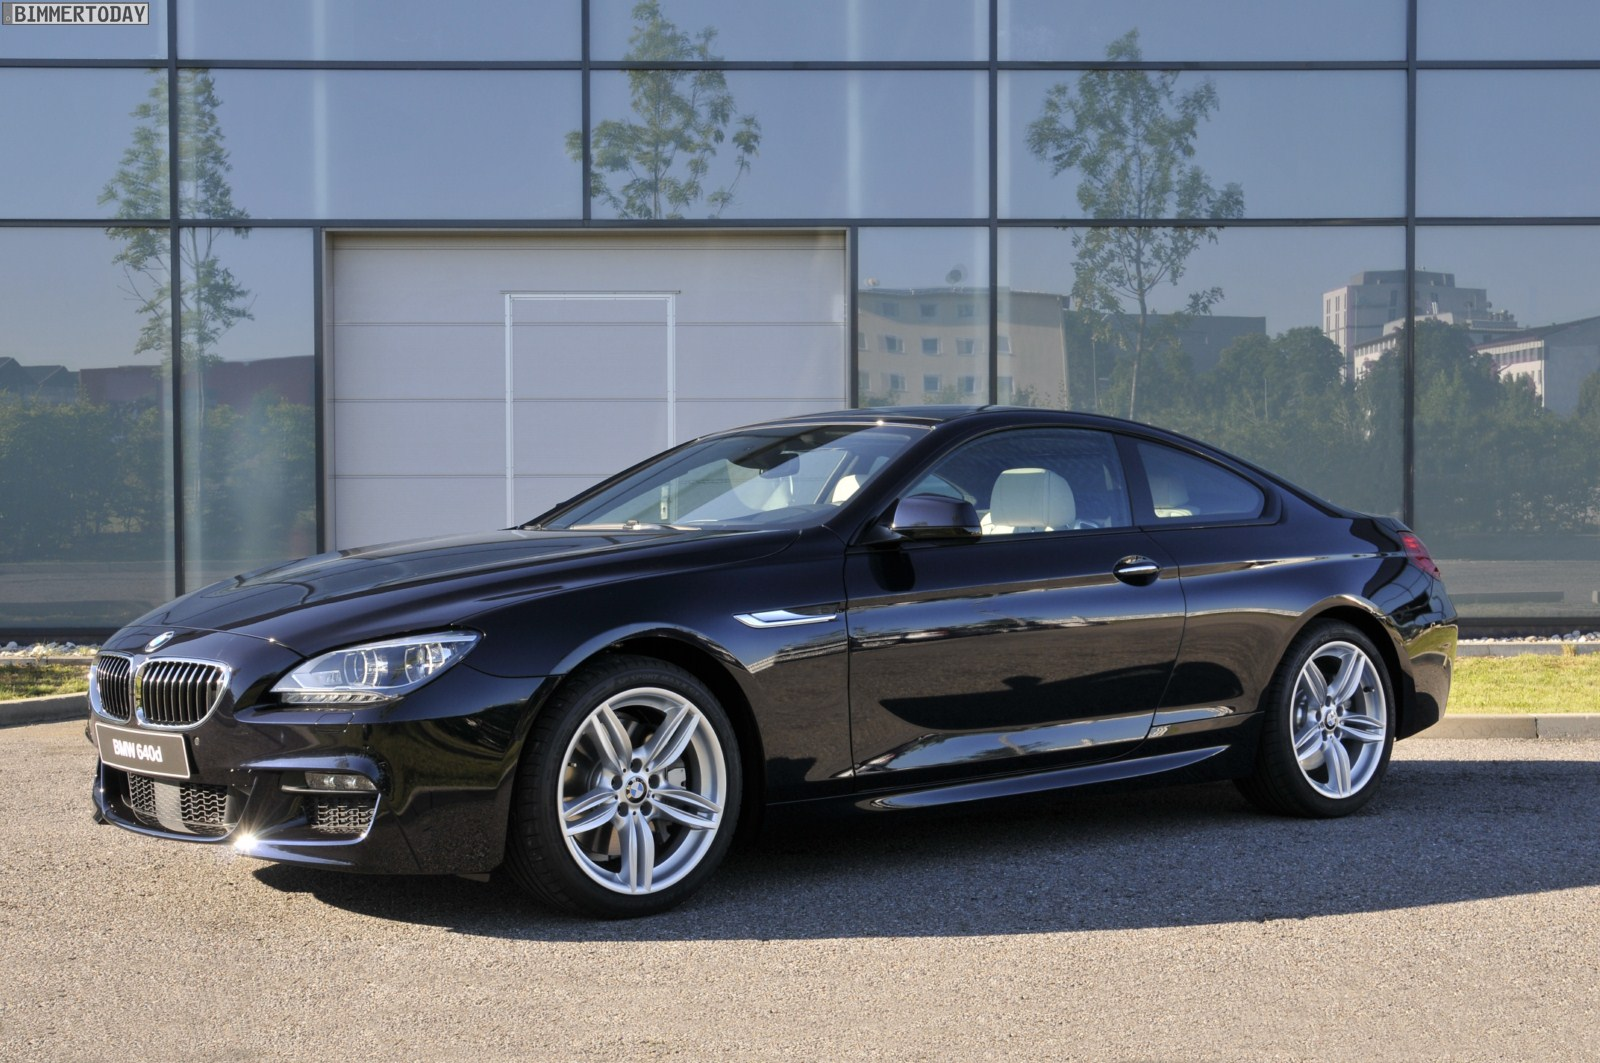 BMW 6er Coupe photo 11